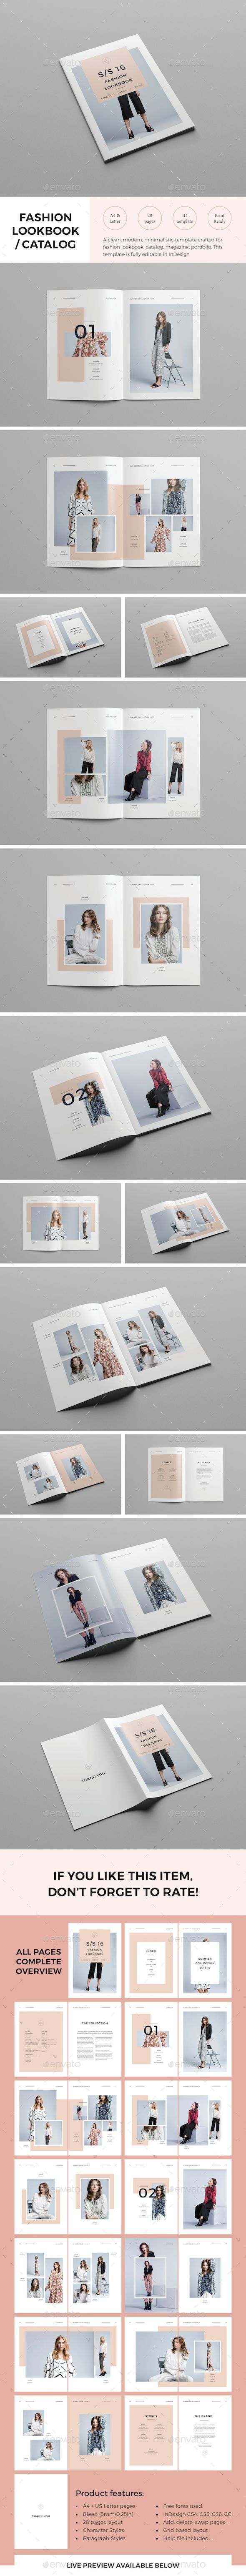 Lookbook Template | Diseño editorial, Editorial y Portafolio